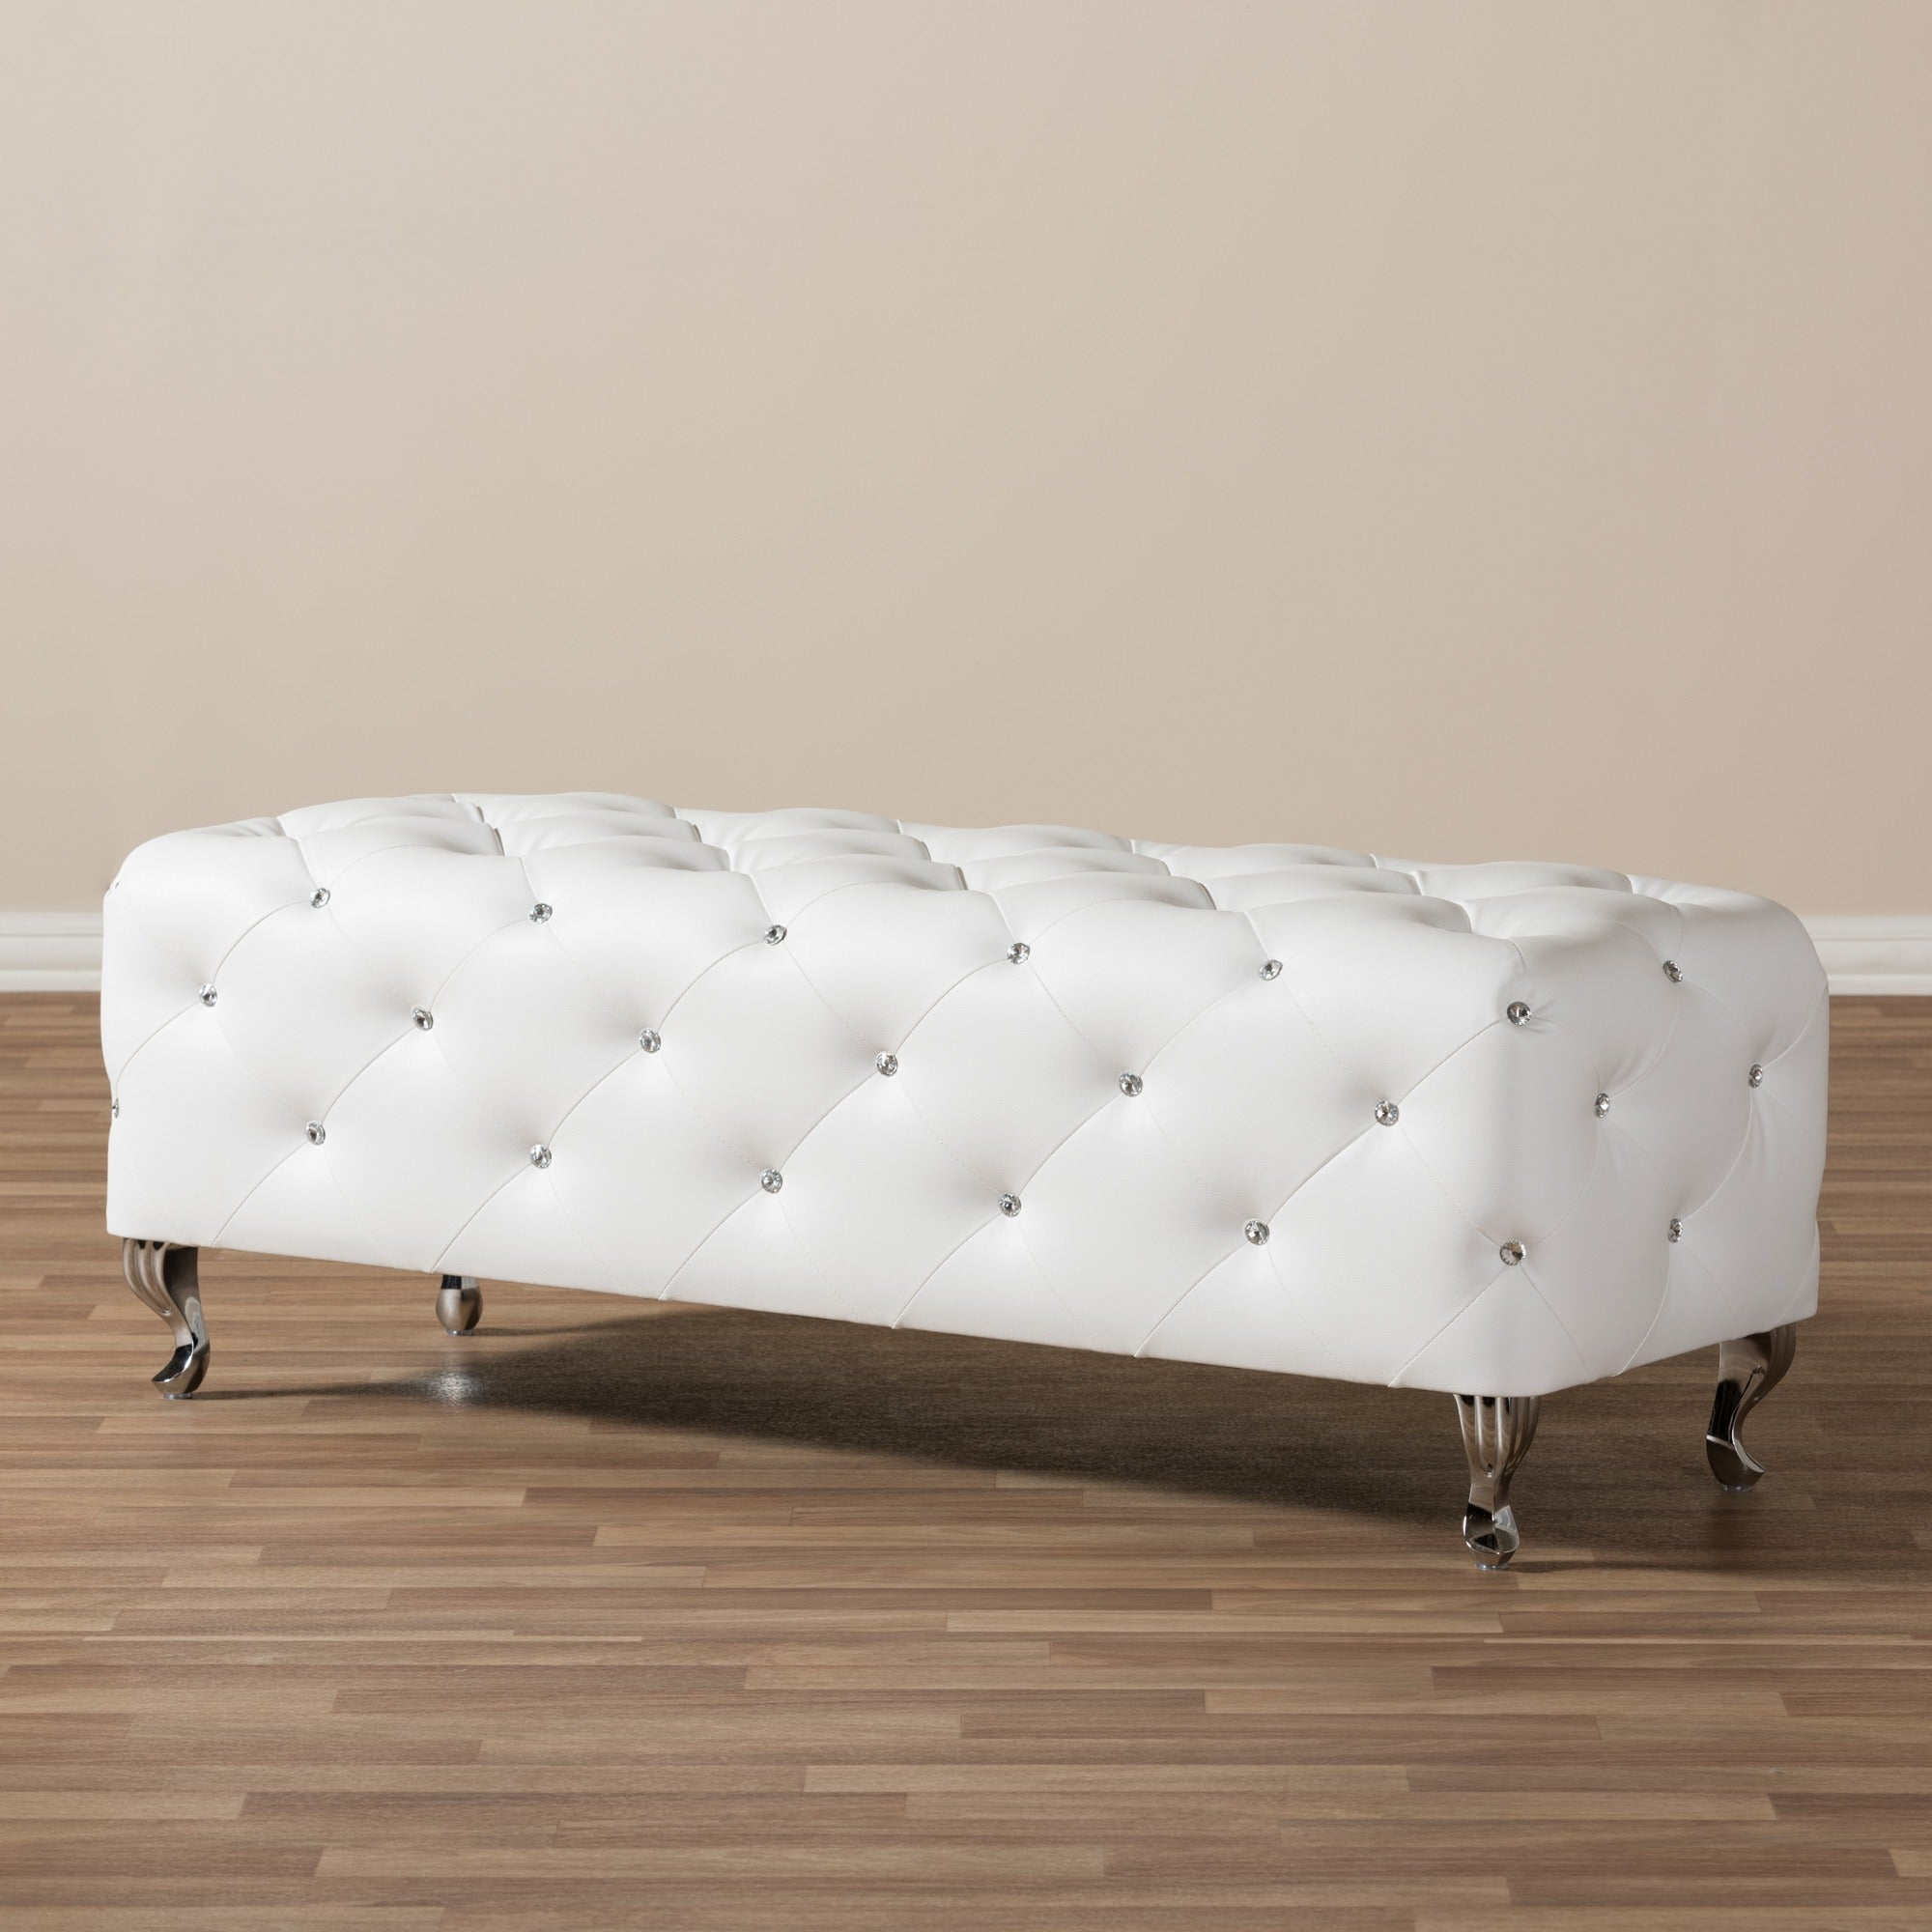 baxton studio stella crystal tufted modern bench  free shipping today overstockcom  . baxton studio stella crystal tufted modern bench  free shipping